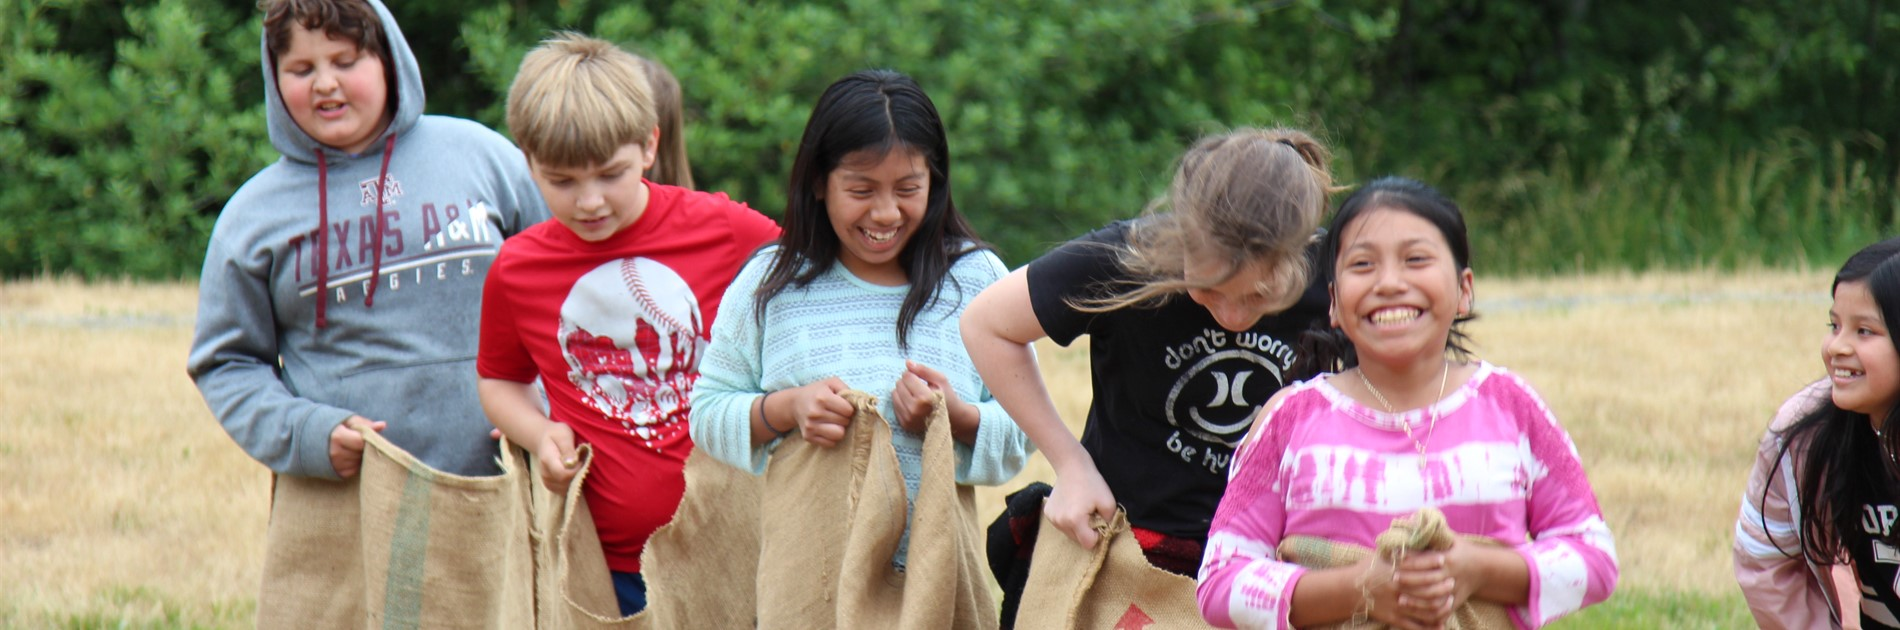 5th graders entering sack race at field day